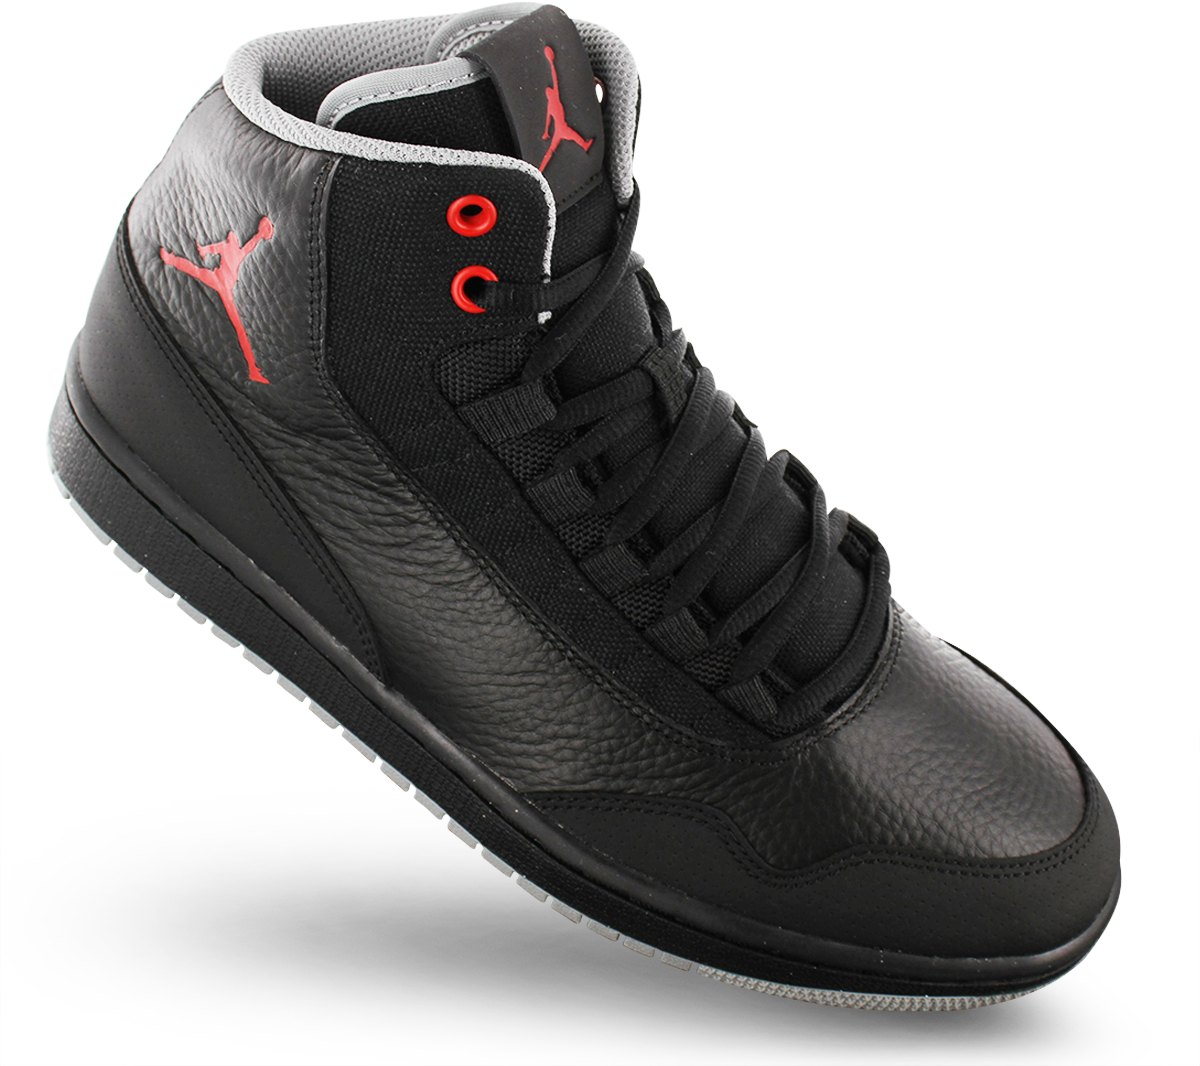 Details zu Nike Air Jordan Executive Herren Basketballschuhe